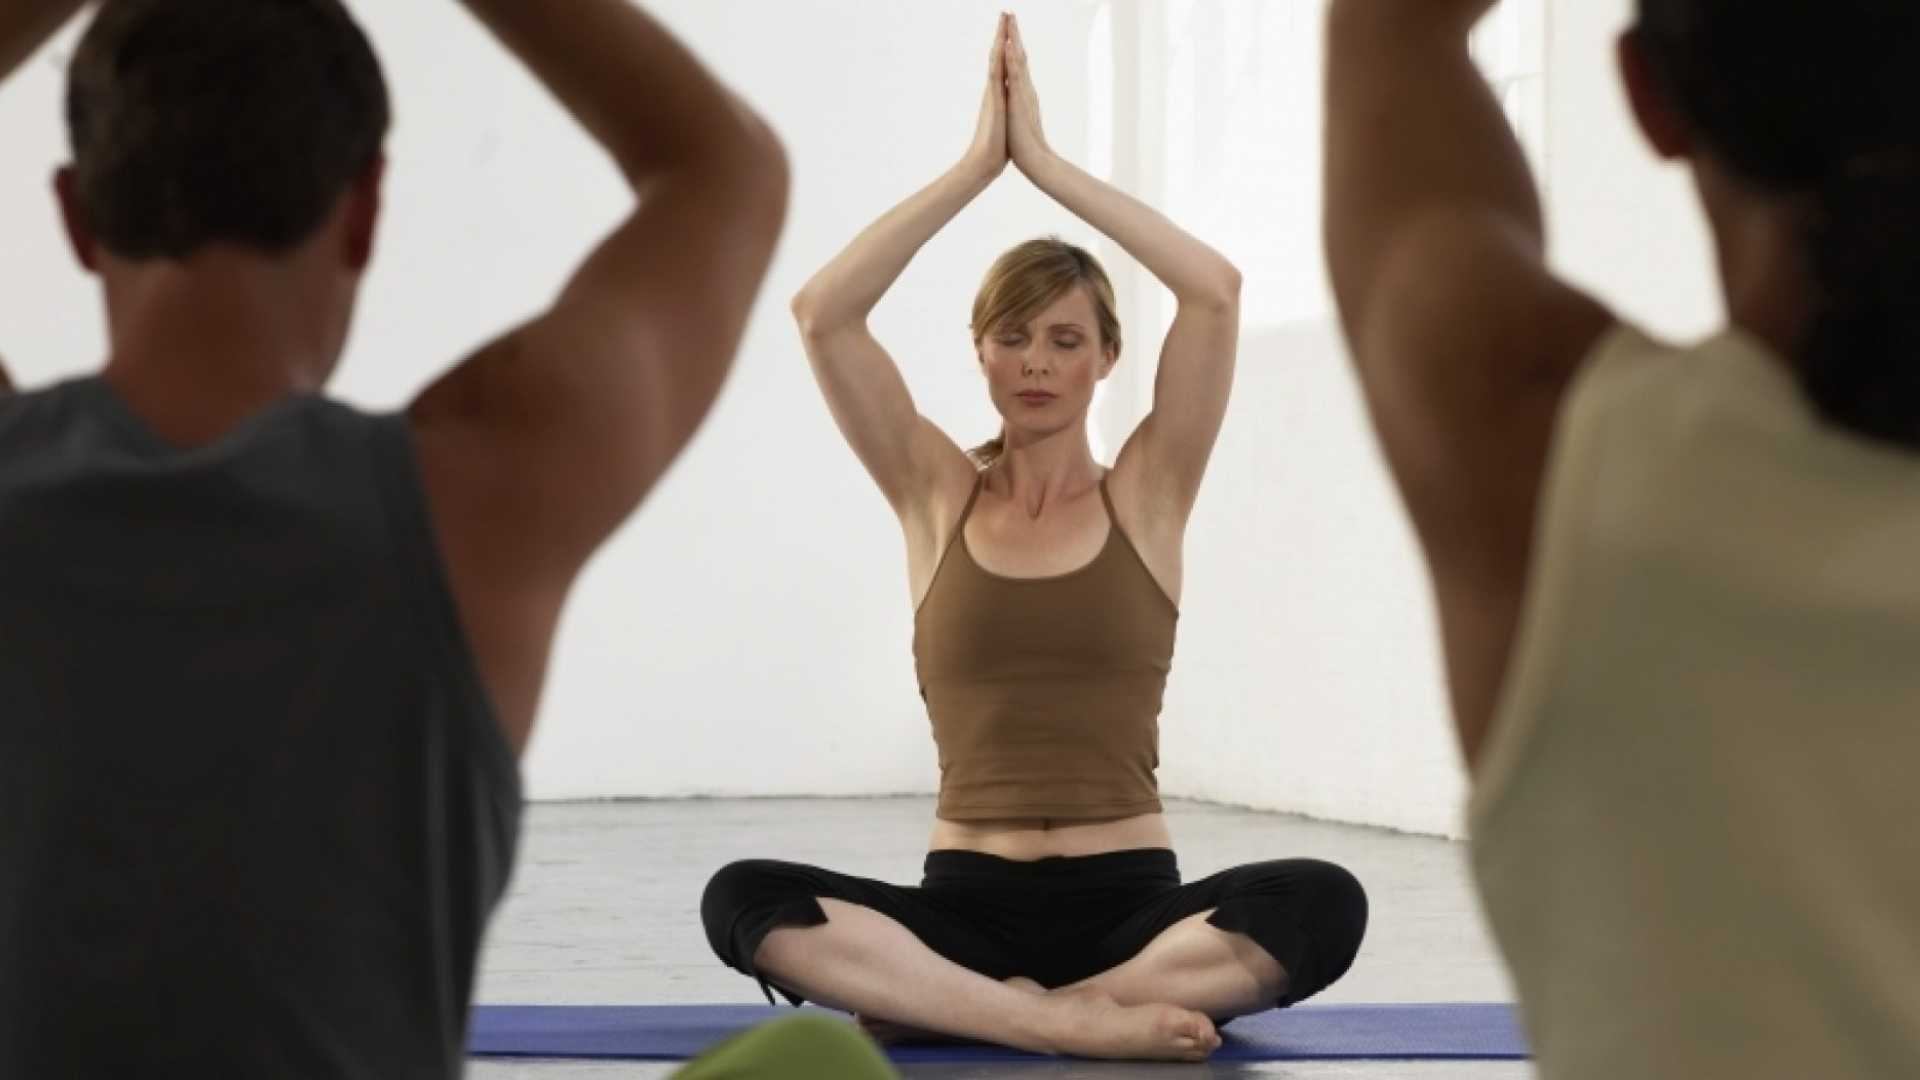 6 Ways That Successful Entrepreneurs Release Stress and Stay Healthy